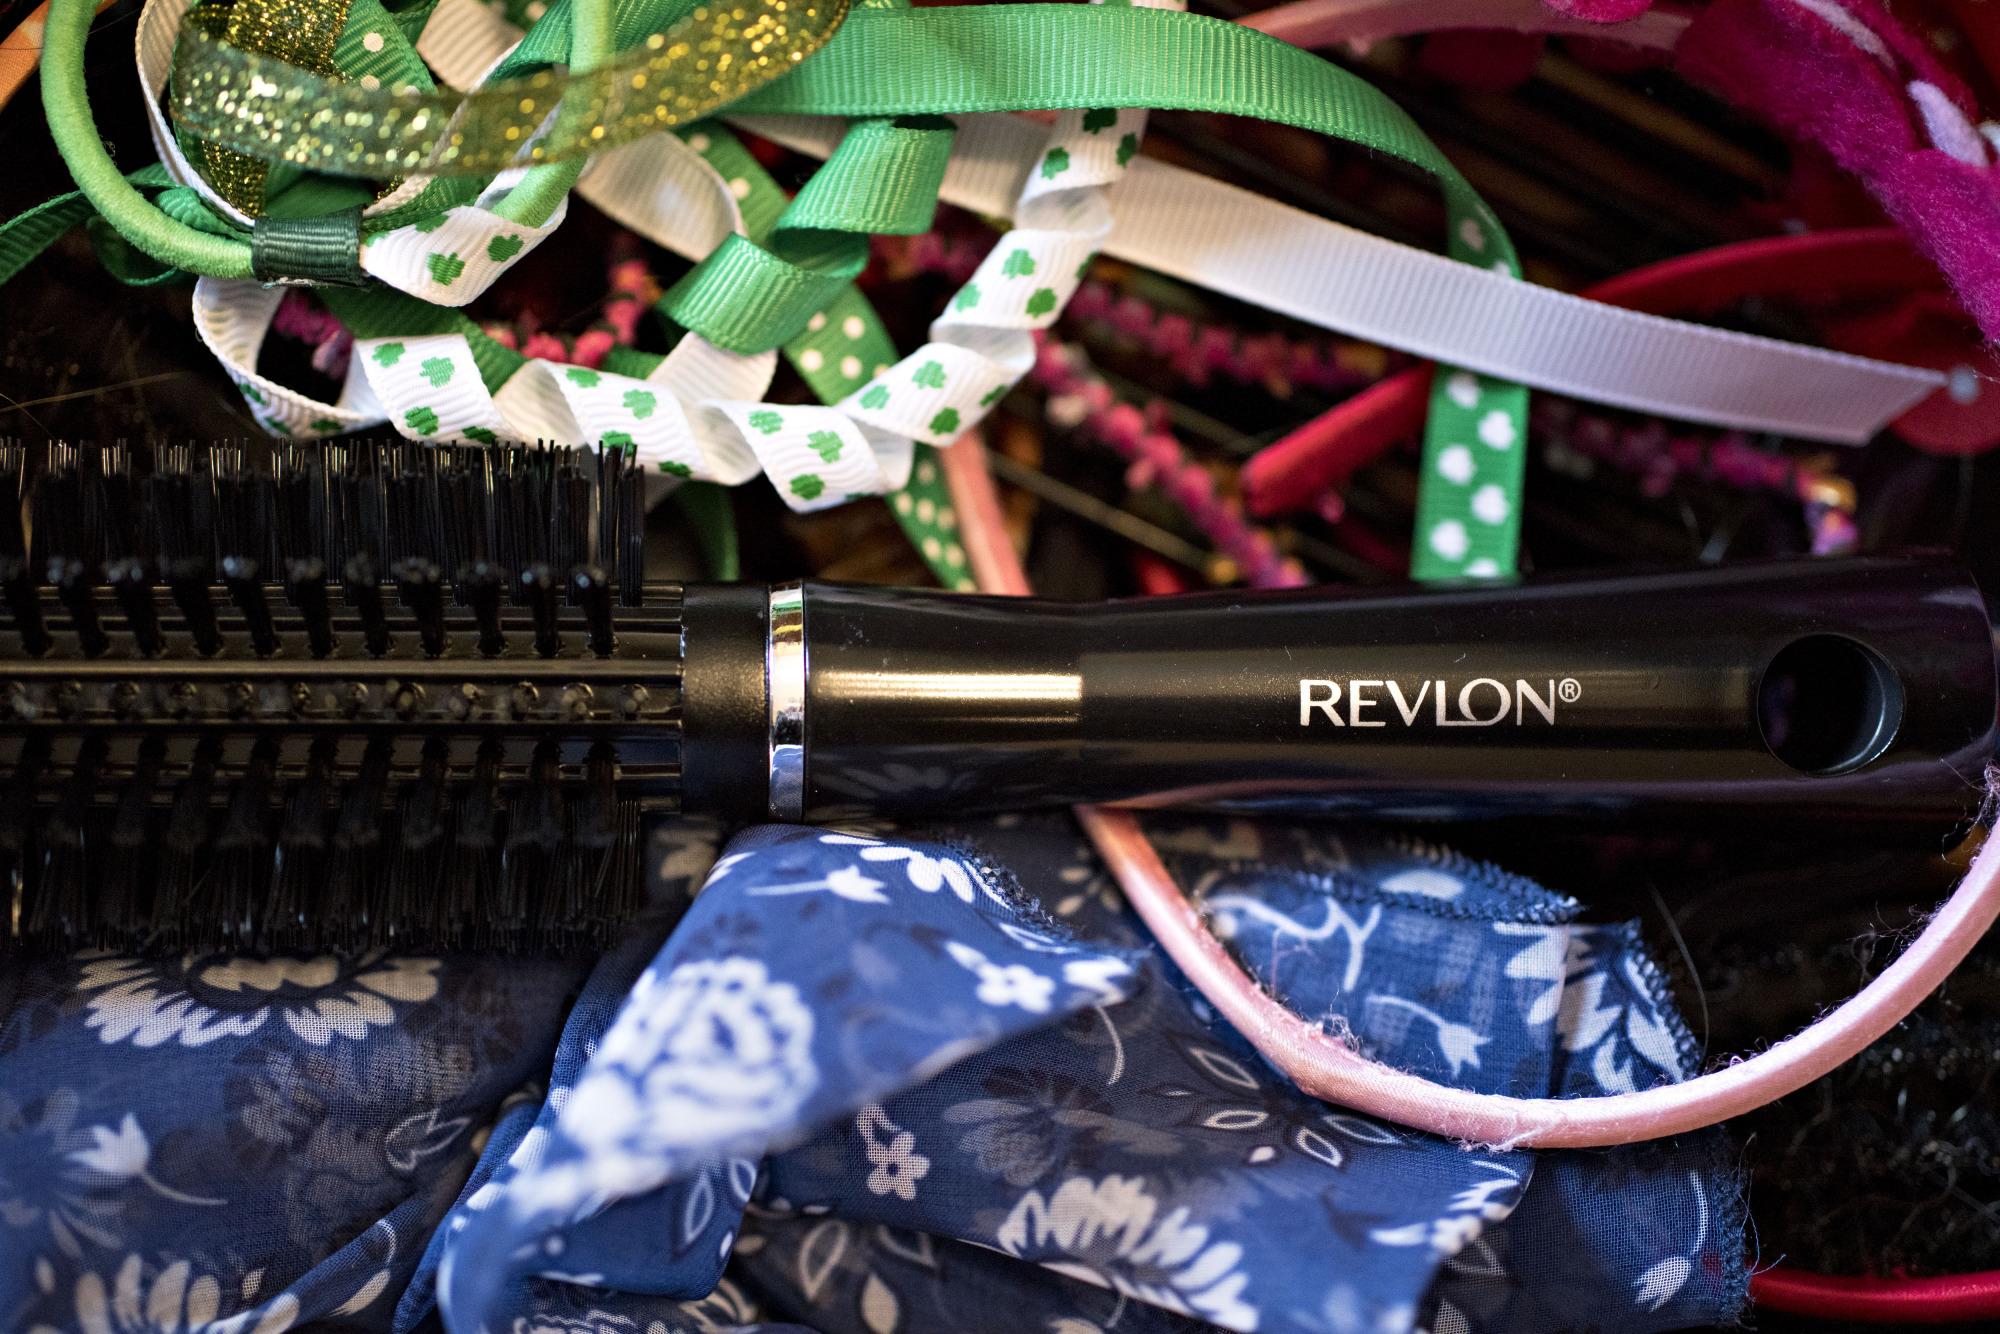 Revlon Inc. Products Ahead Of Earnings Figures